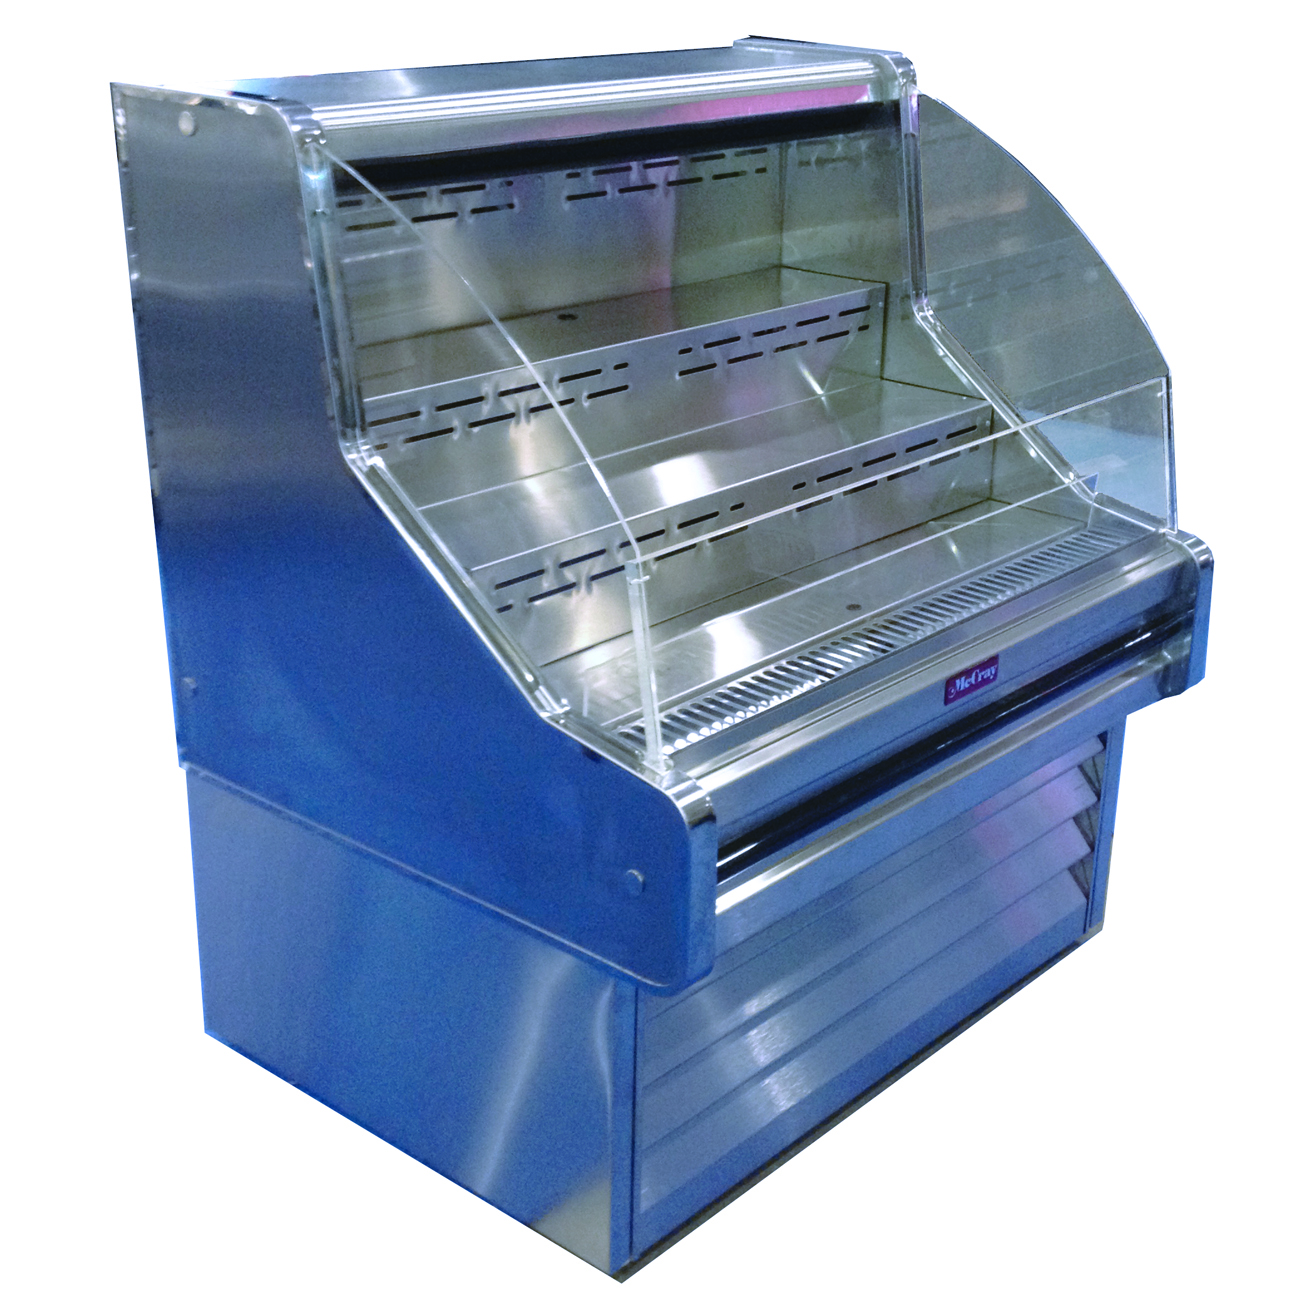 Howard-McCray R-OS30E-5C-S-LED merchandiser, open refrigerated display